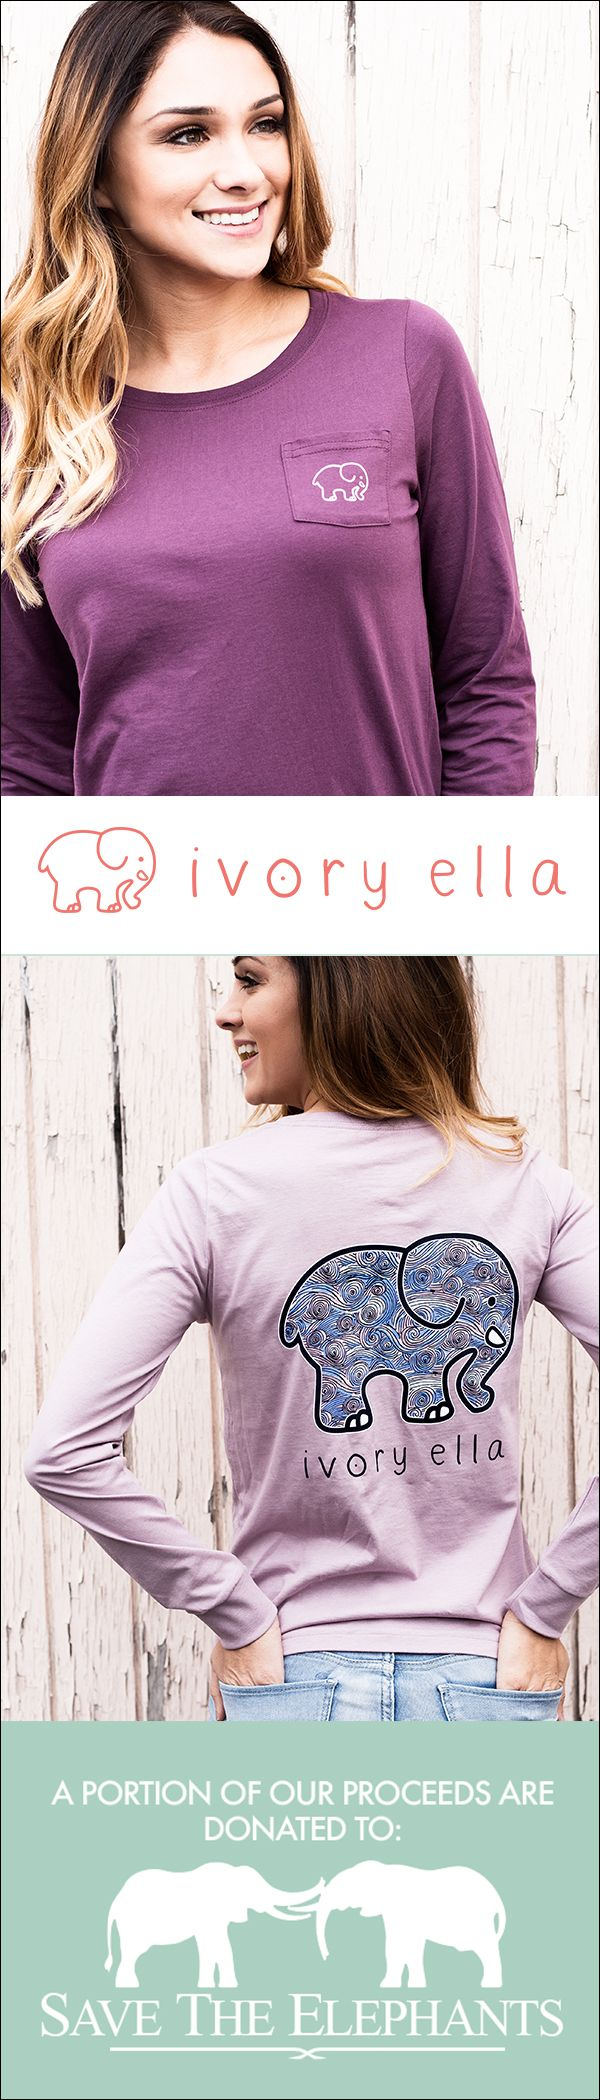 Check out our latest t-shirts & hoodies. Every purchase supports Save the Elephants.